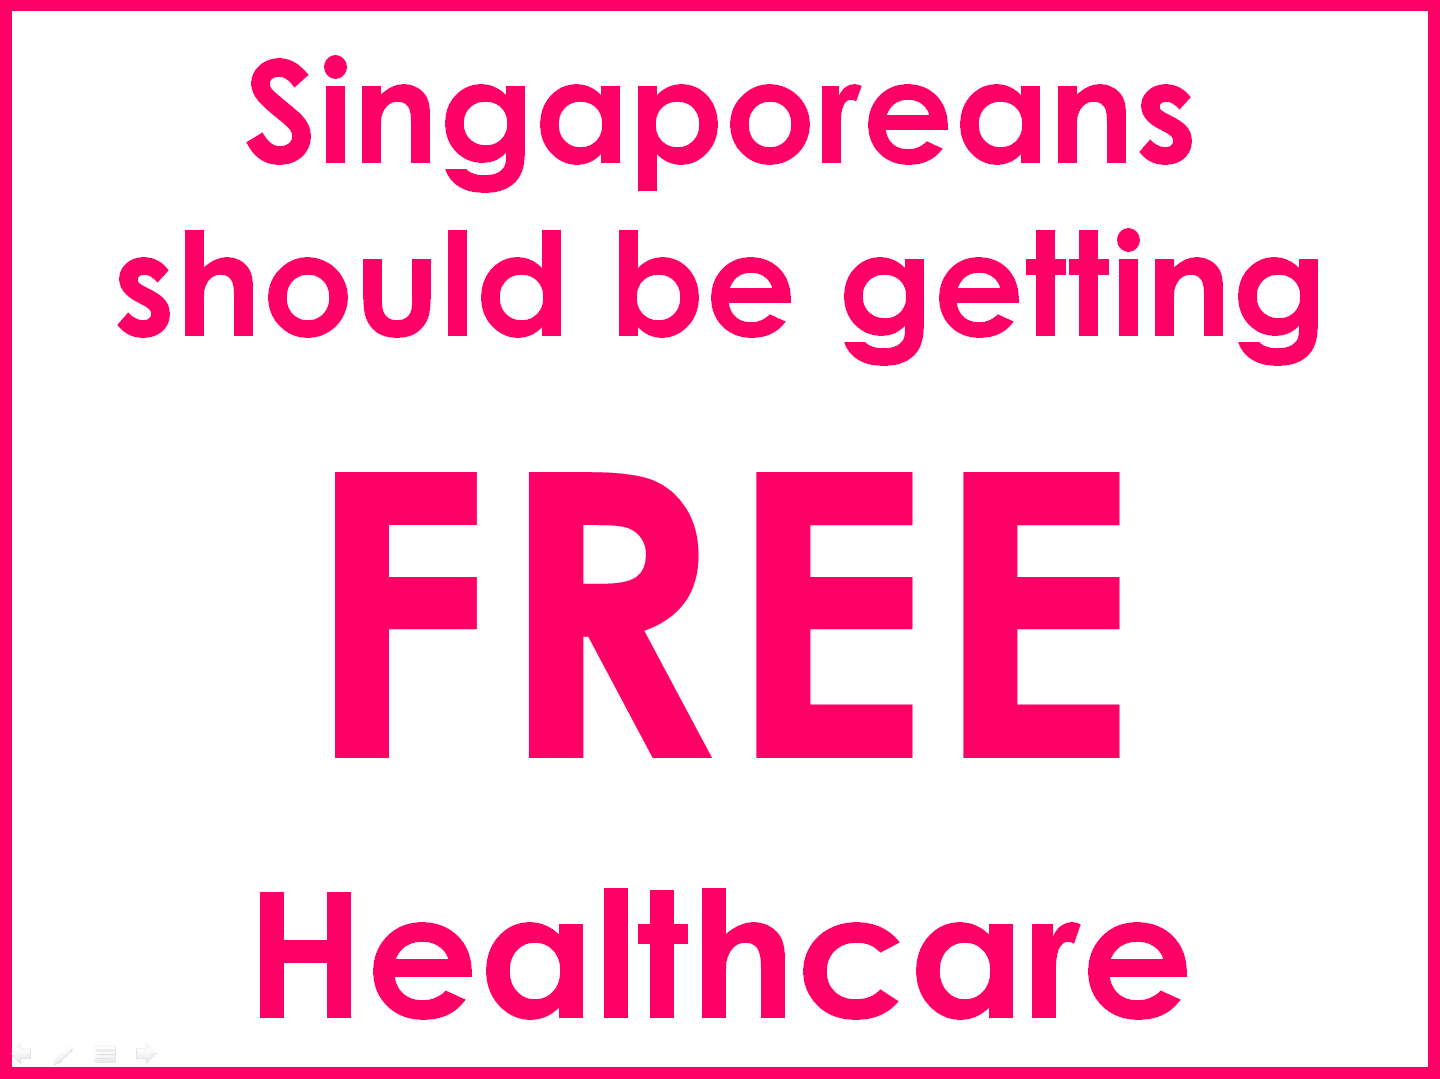 24 Singaporeans should be getting FREE healthcare.png